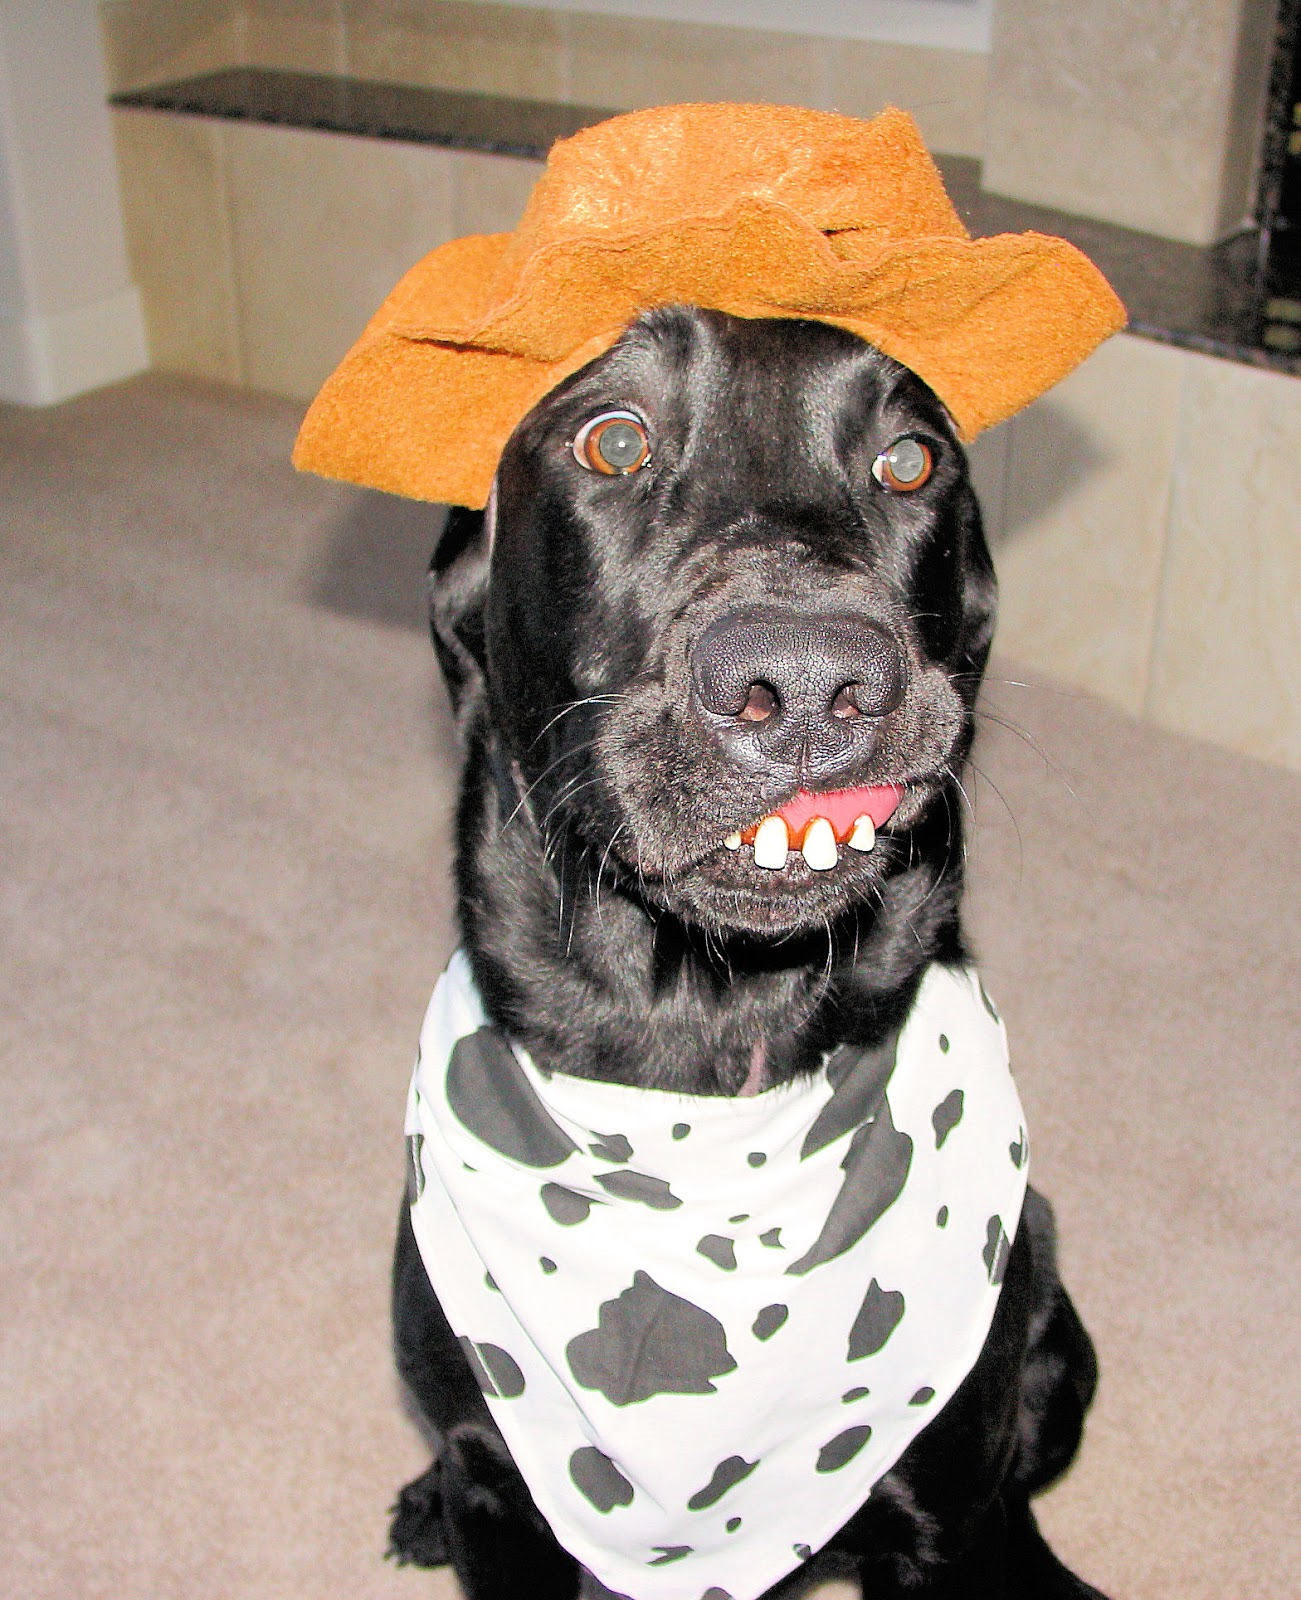 Crazy Halloween Decorations: Dr. Debbie: Pet Halloween Costumes: Spook-tastic Or Just